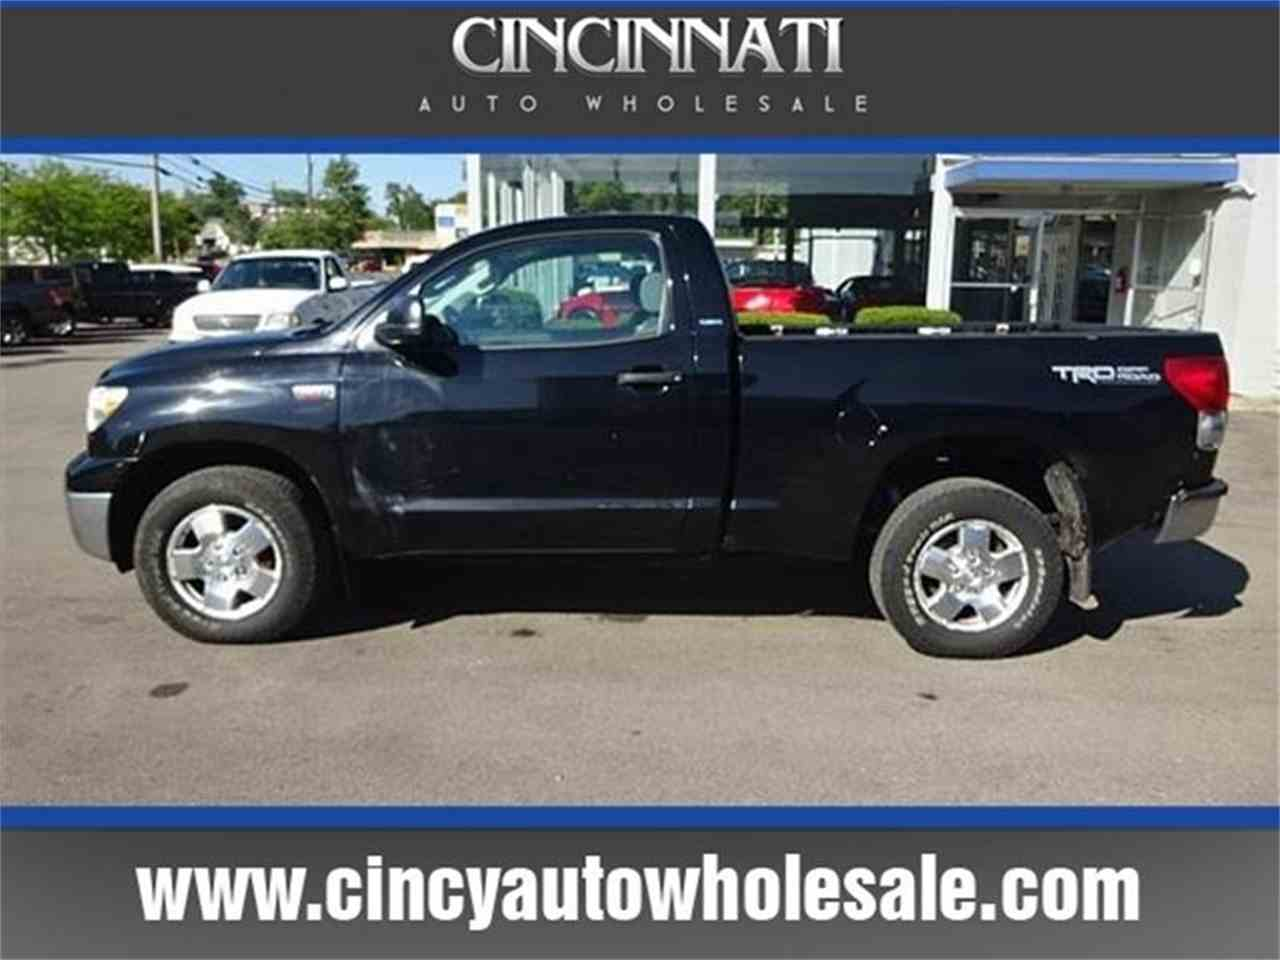 Large Picture of '08 Toyota Tundra Offered by Cincinnati Auto Wholesale - MBKP